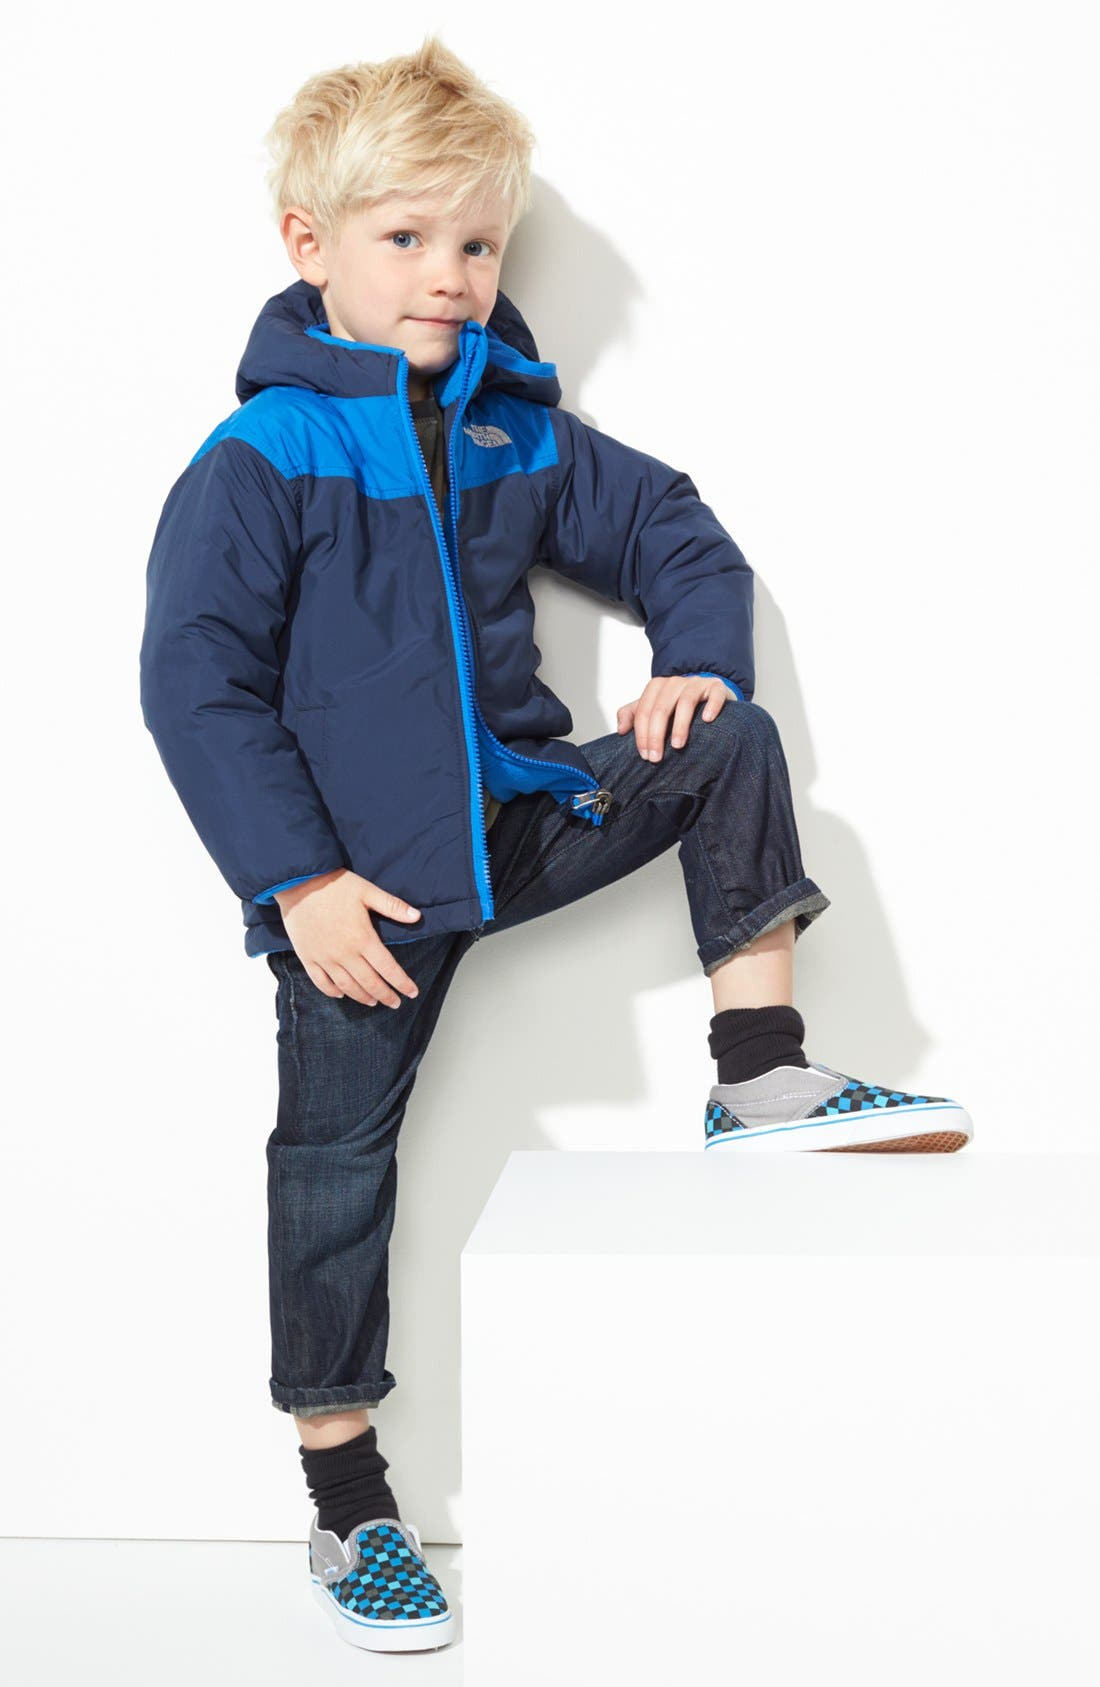 Alternate Image 1 Selected - The North Face Jacket & 7 For All Mankind® Jeans (Toddler Boys)